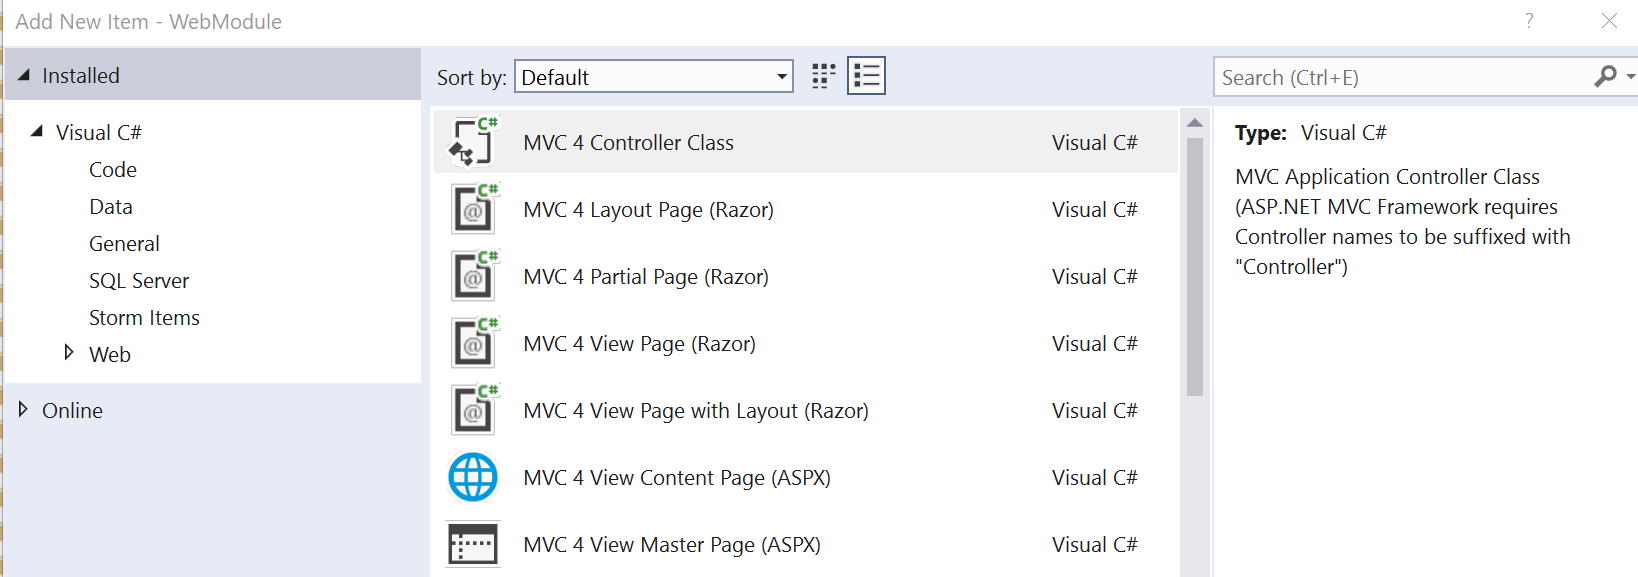 Add new item dialog in visual studio